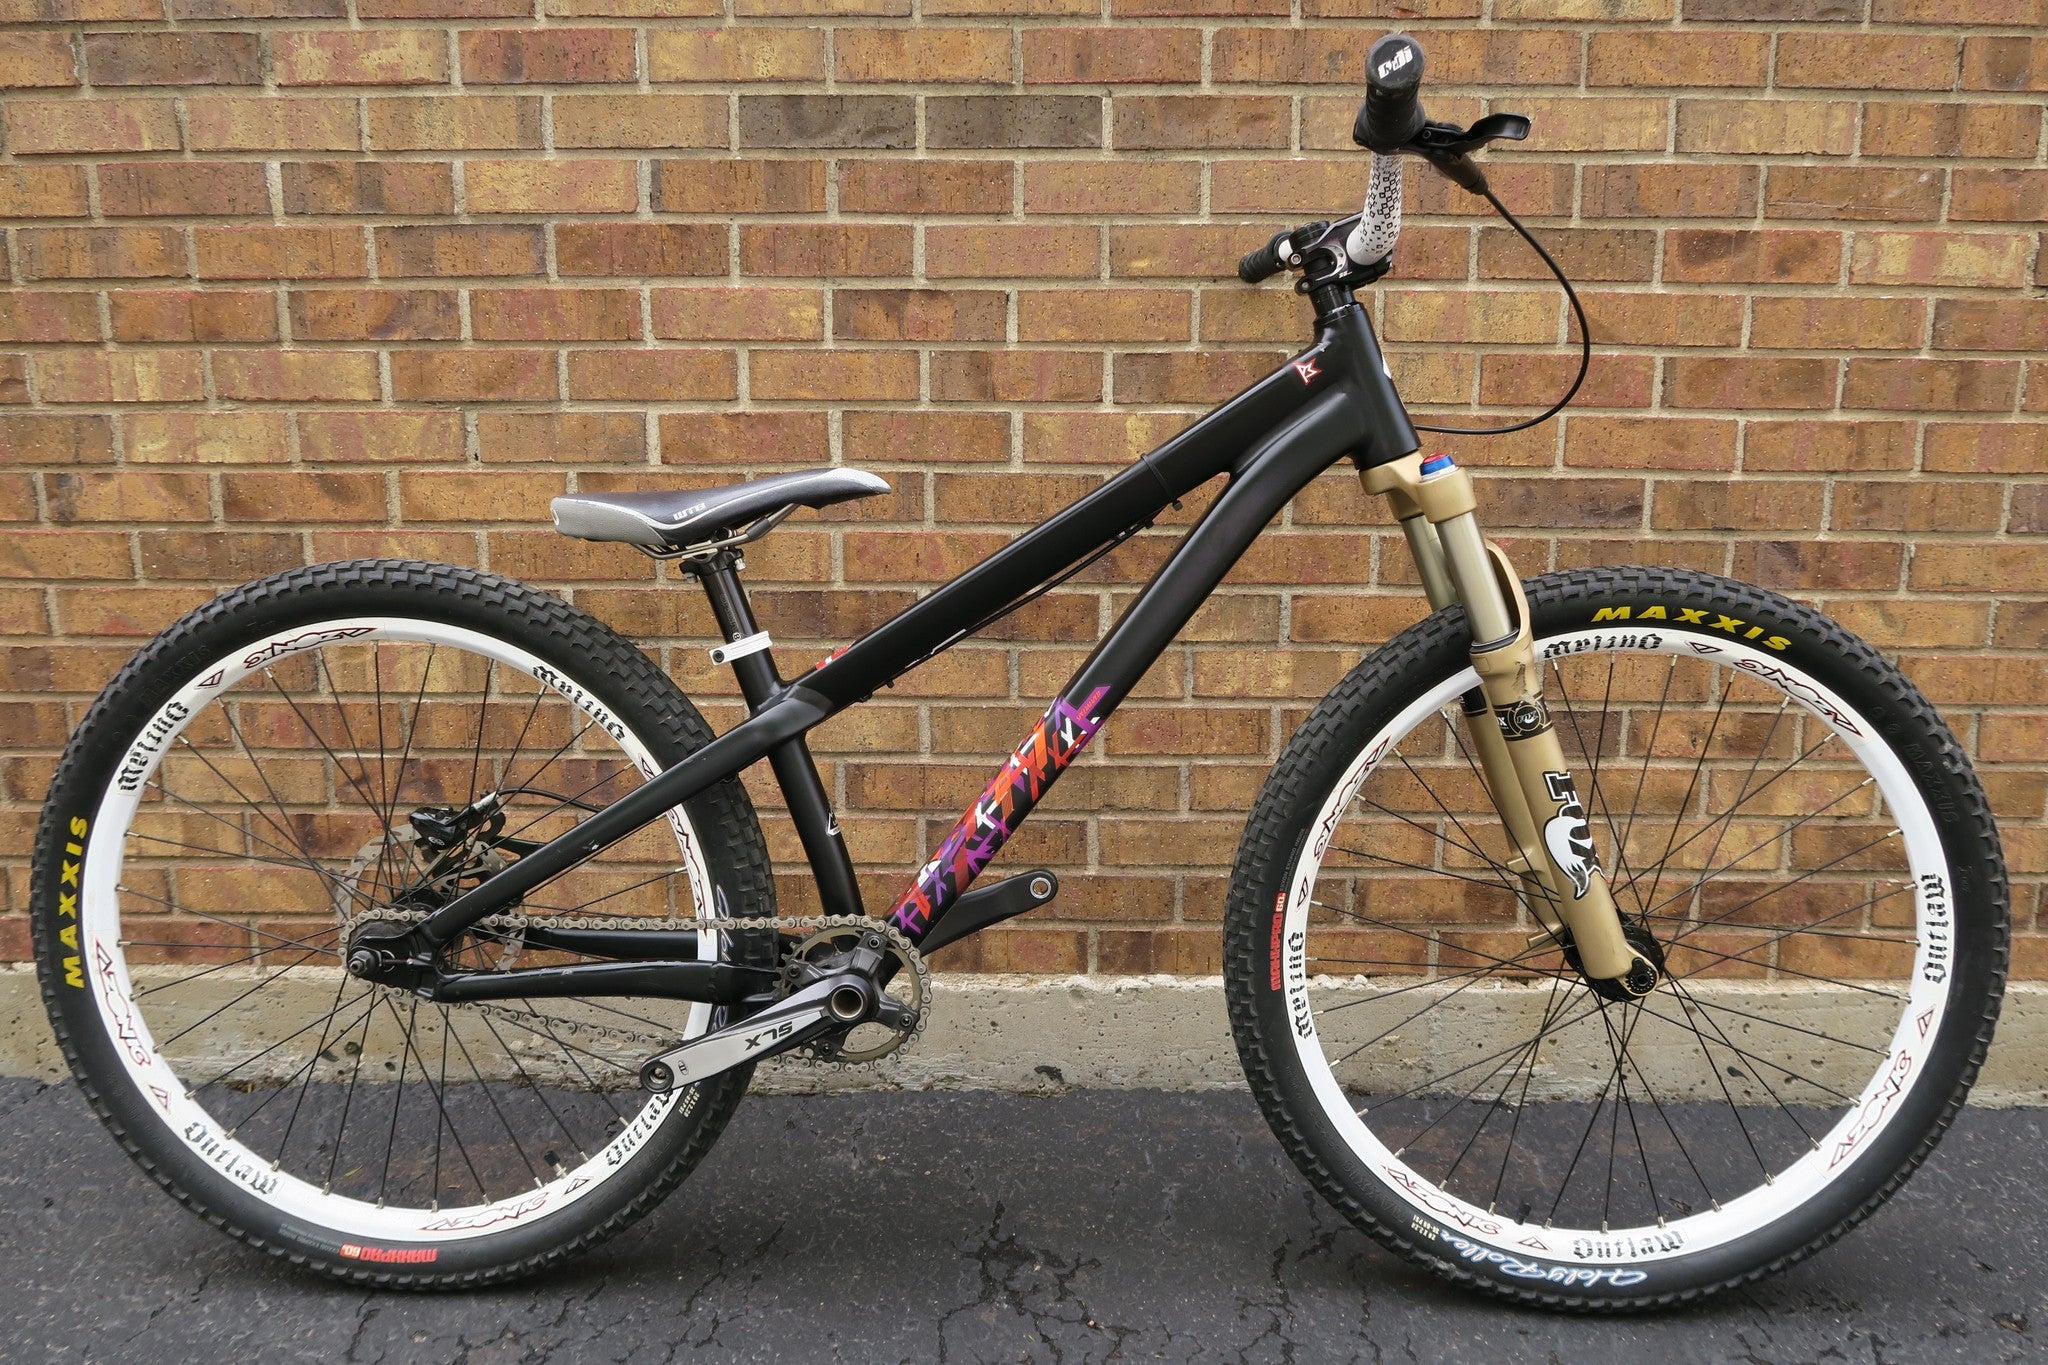 2012 SPECIALIZED P3